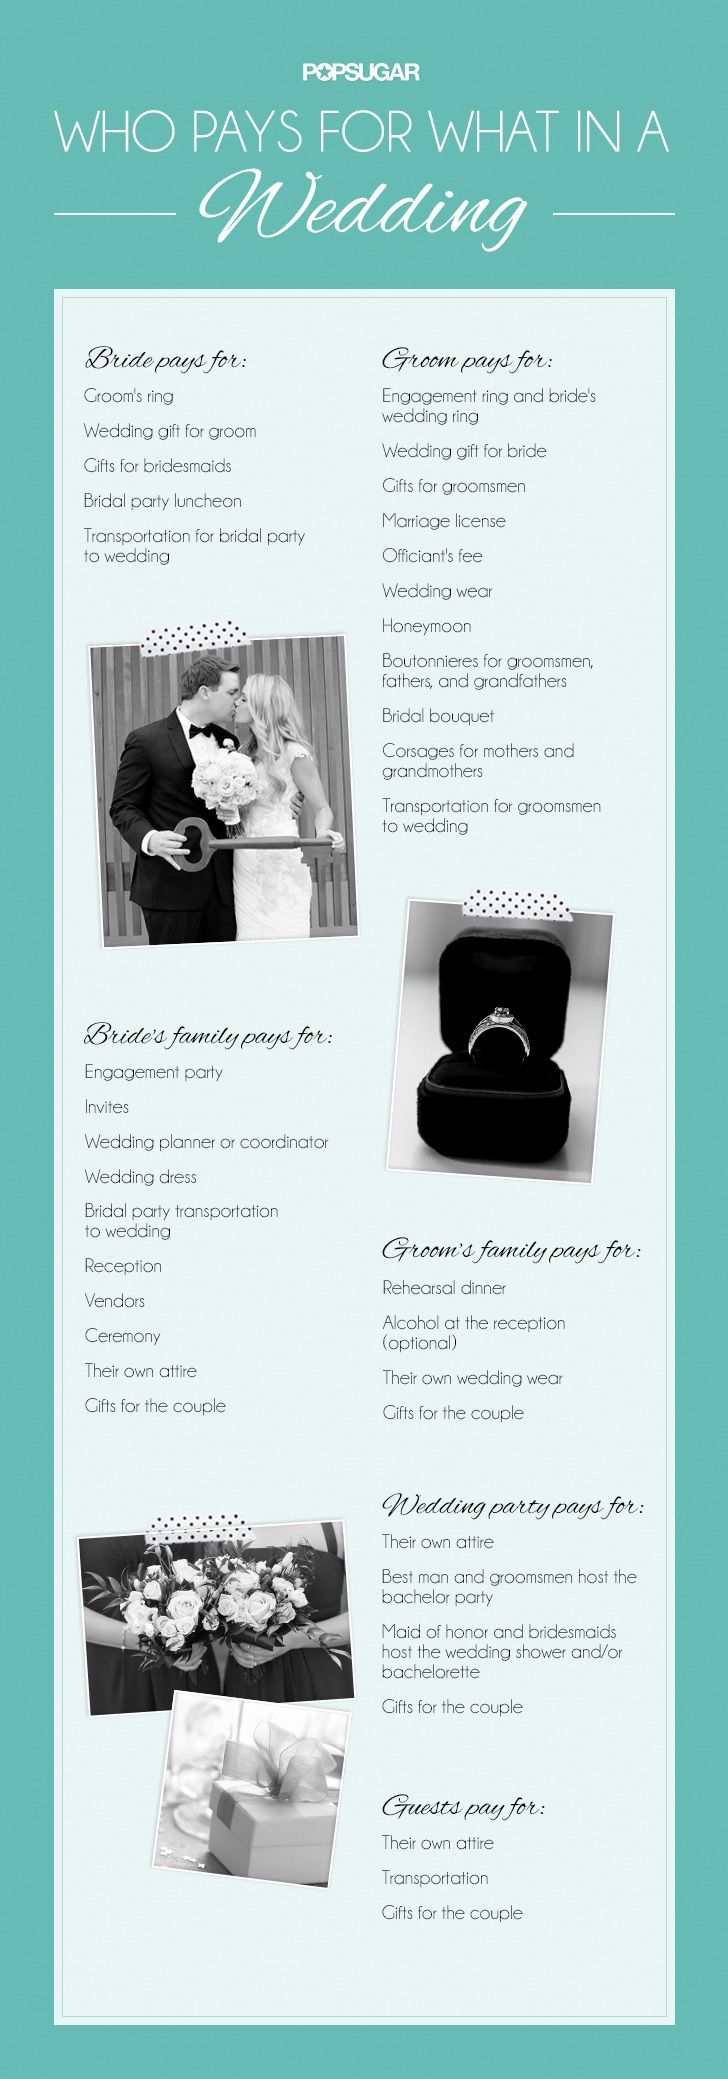 guide to who should pay for what in a wedding...self explanatory but some people don't know the etiquette: